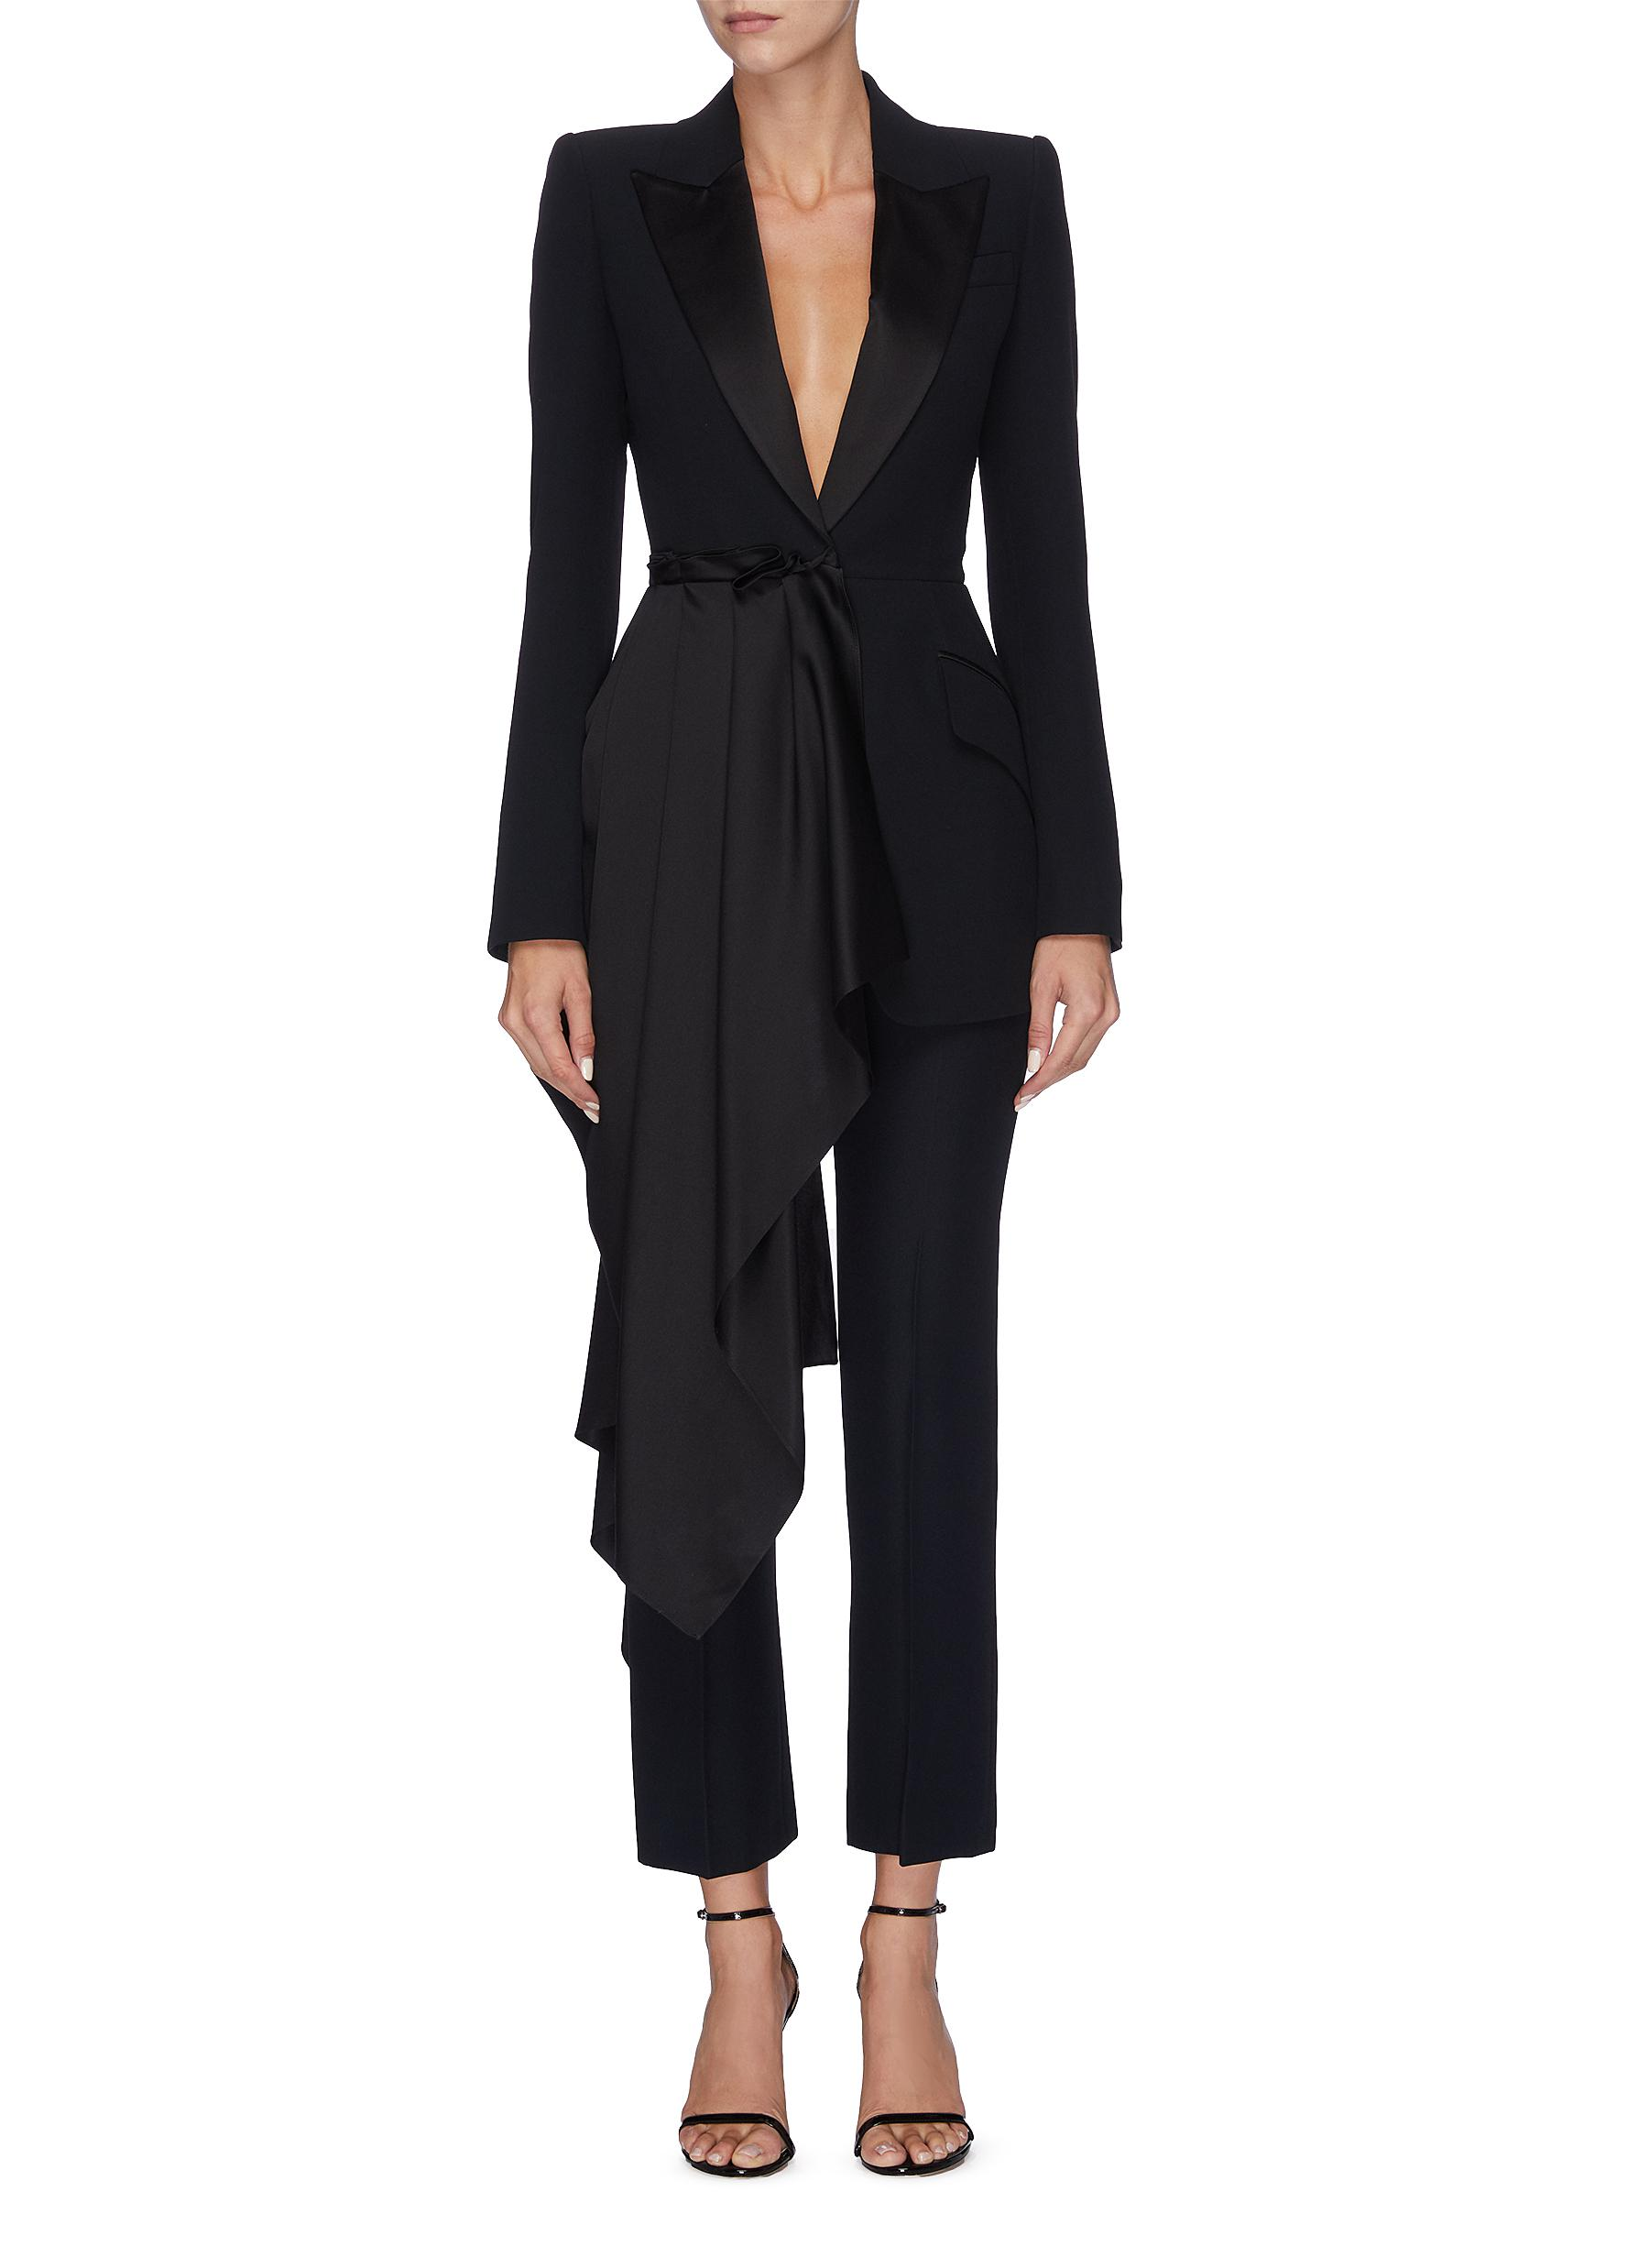 Drape panel double breasted satin blazer by Alexander Mcqueen